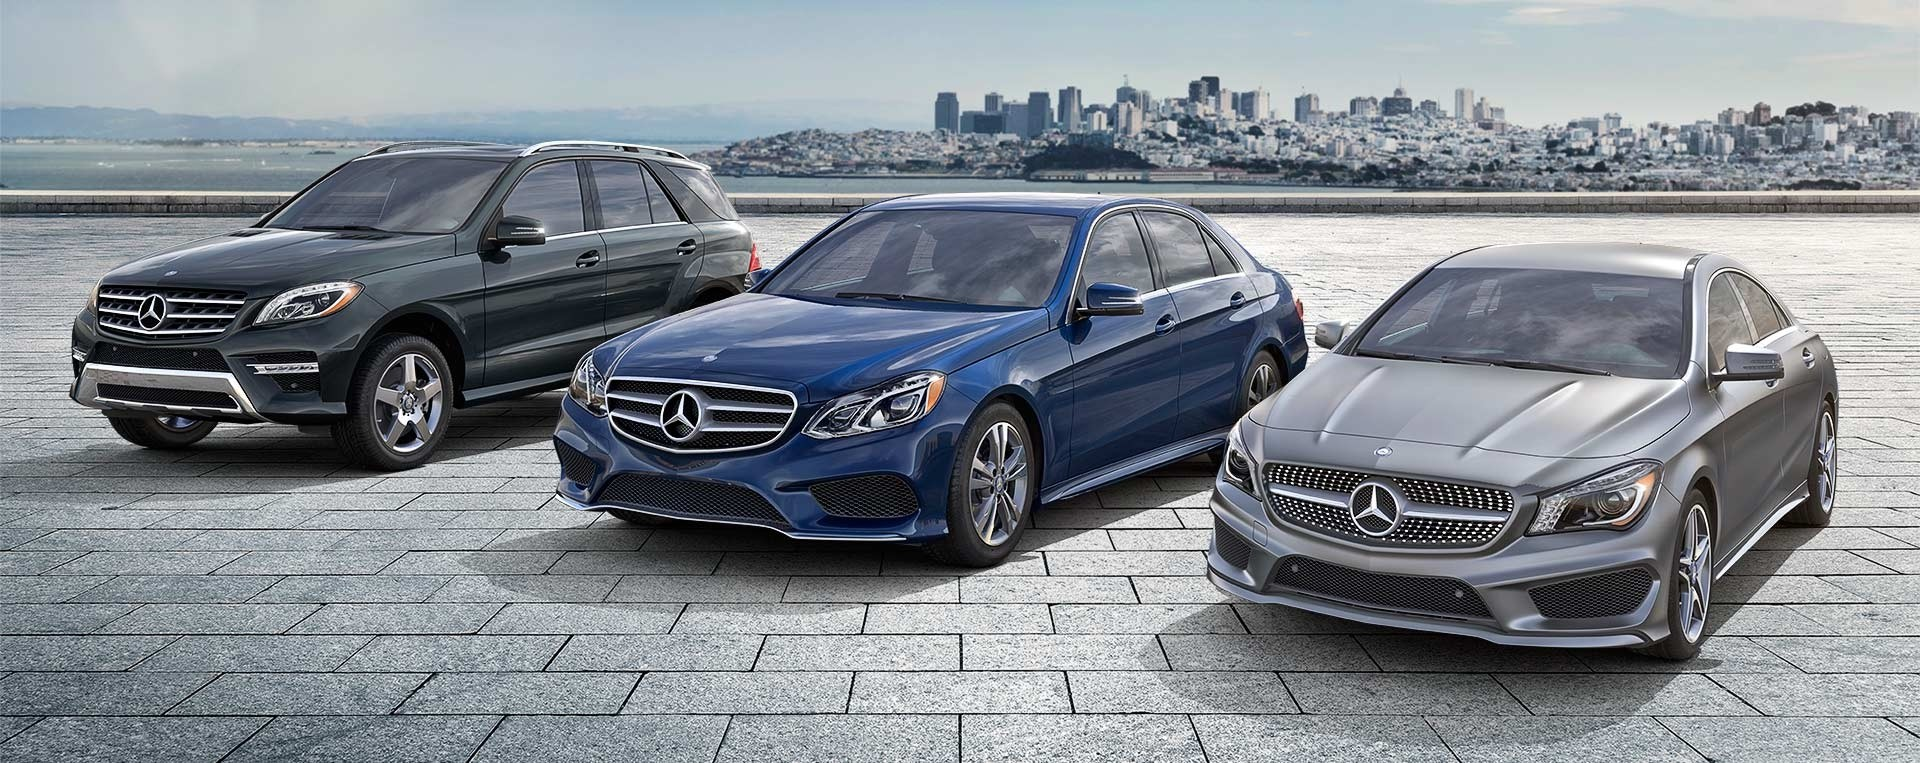 mercedes benz certified pre owned program vs audi ForMercedes Benz Cpo